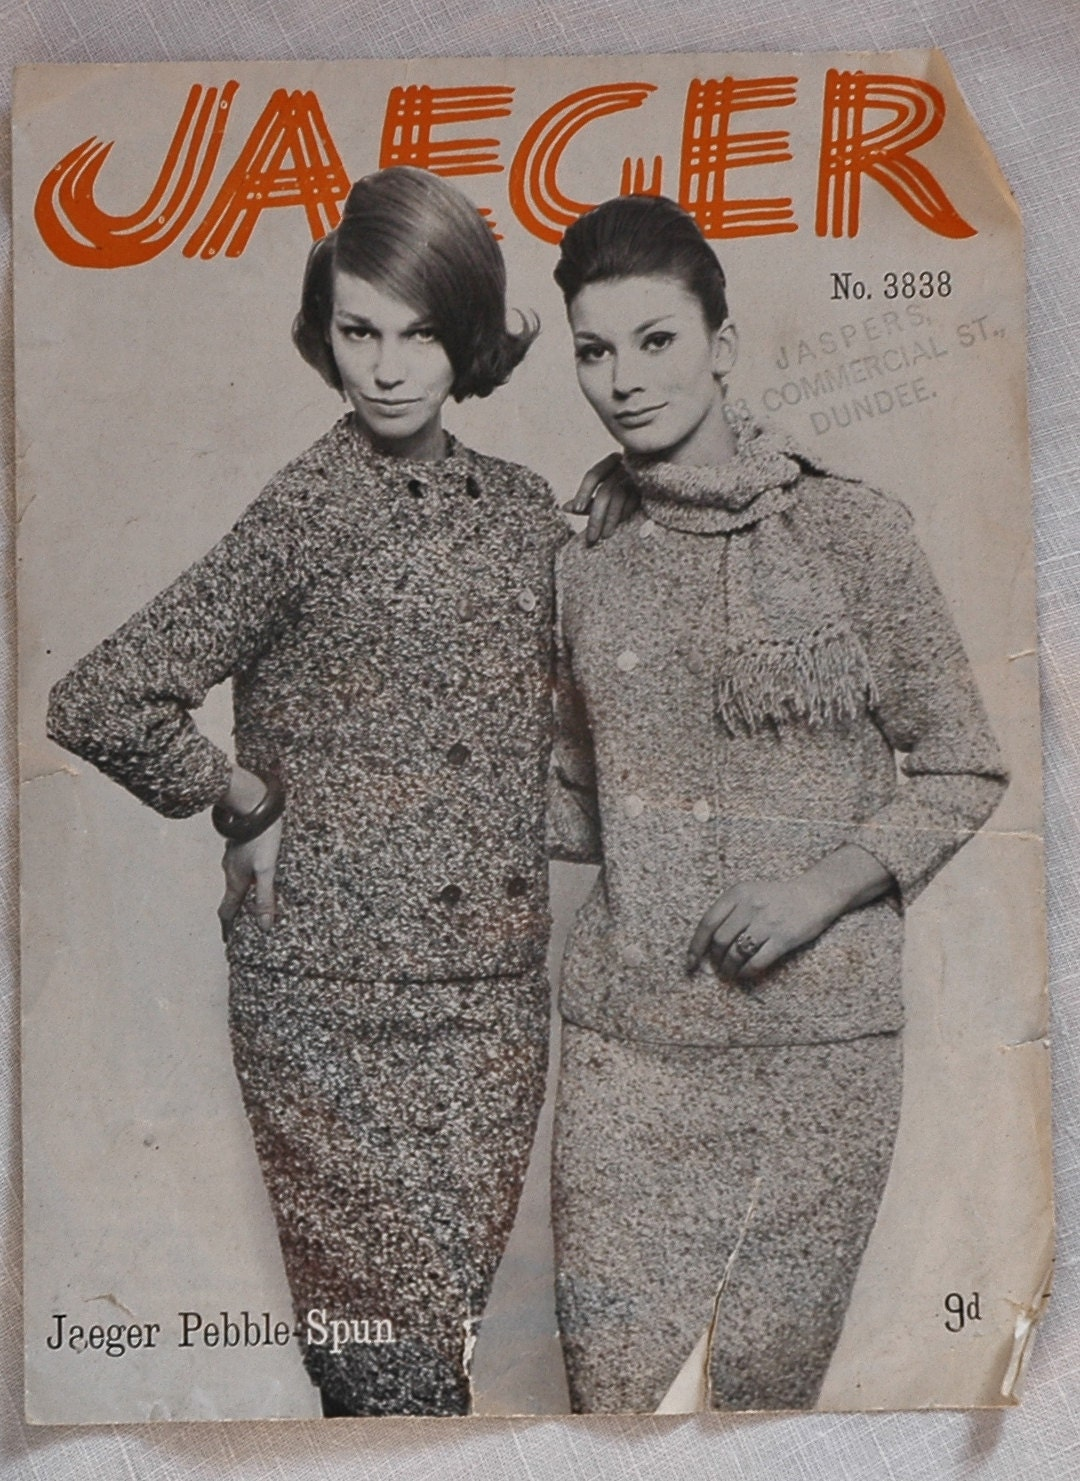 Vintage jaeger knitting pattern jacket scarf and skirt 1960s details vintage jaeger knitting pattern bankloansurffo Images